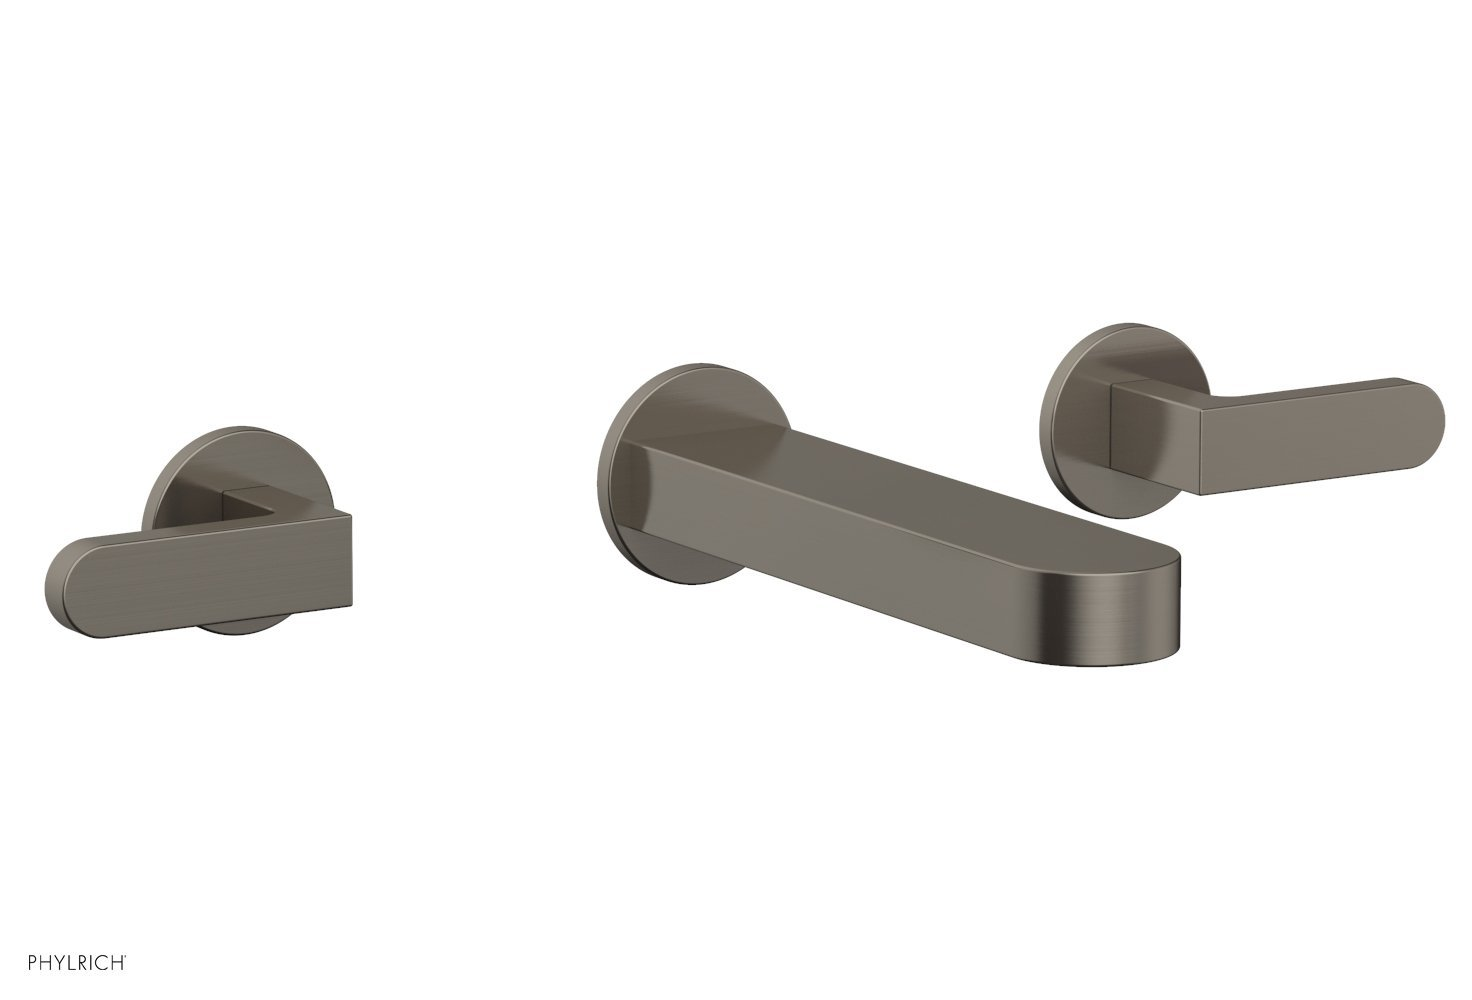 Phylrich 183-12-15A ROND Wall Lavatory Set - Lever Handles - Pewter